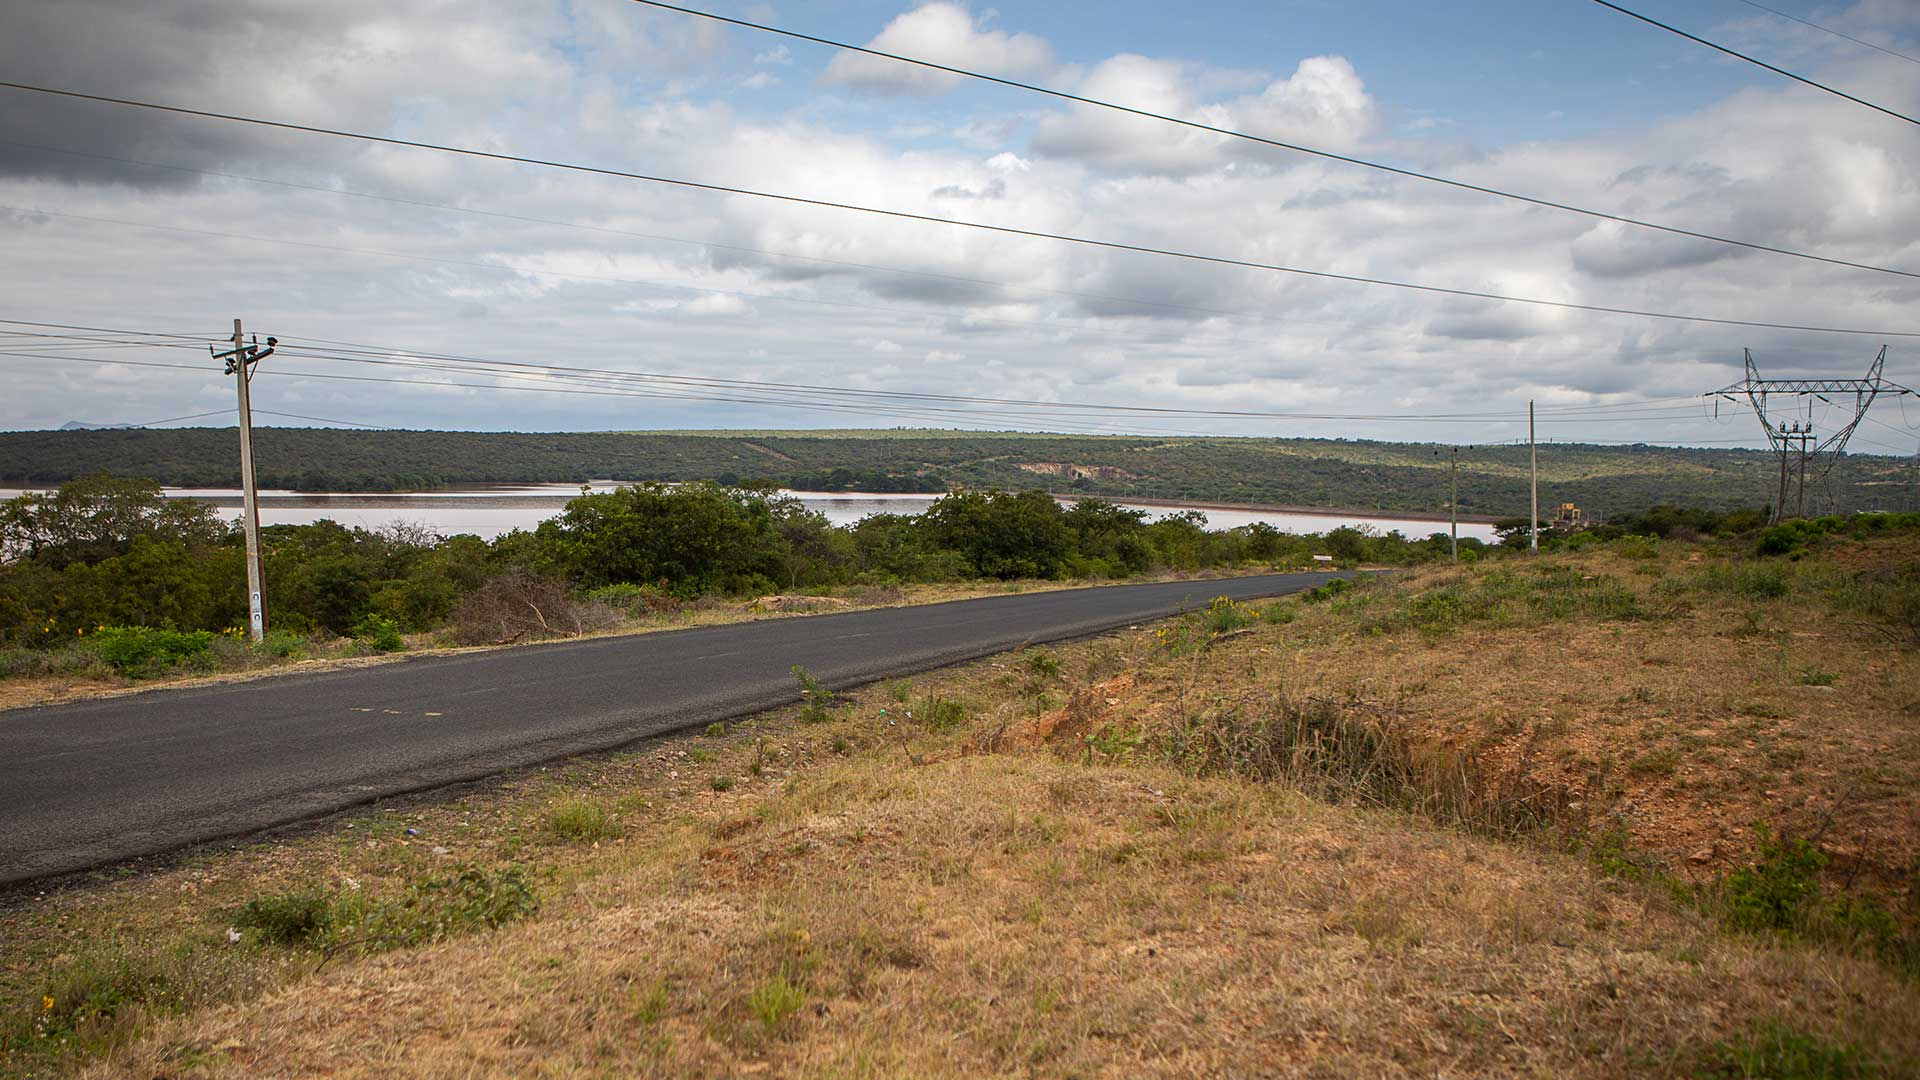 Kamburu again, where they have good roads and electricity supply to the upcoming sawmill